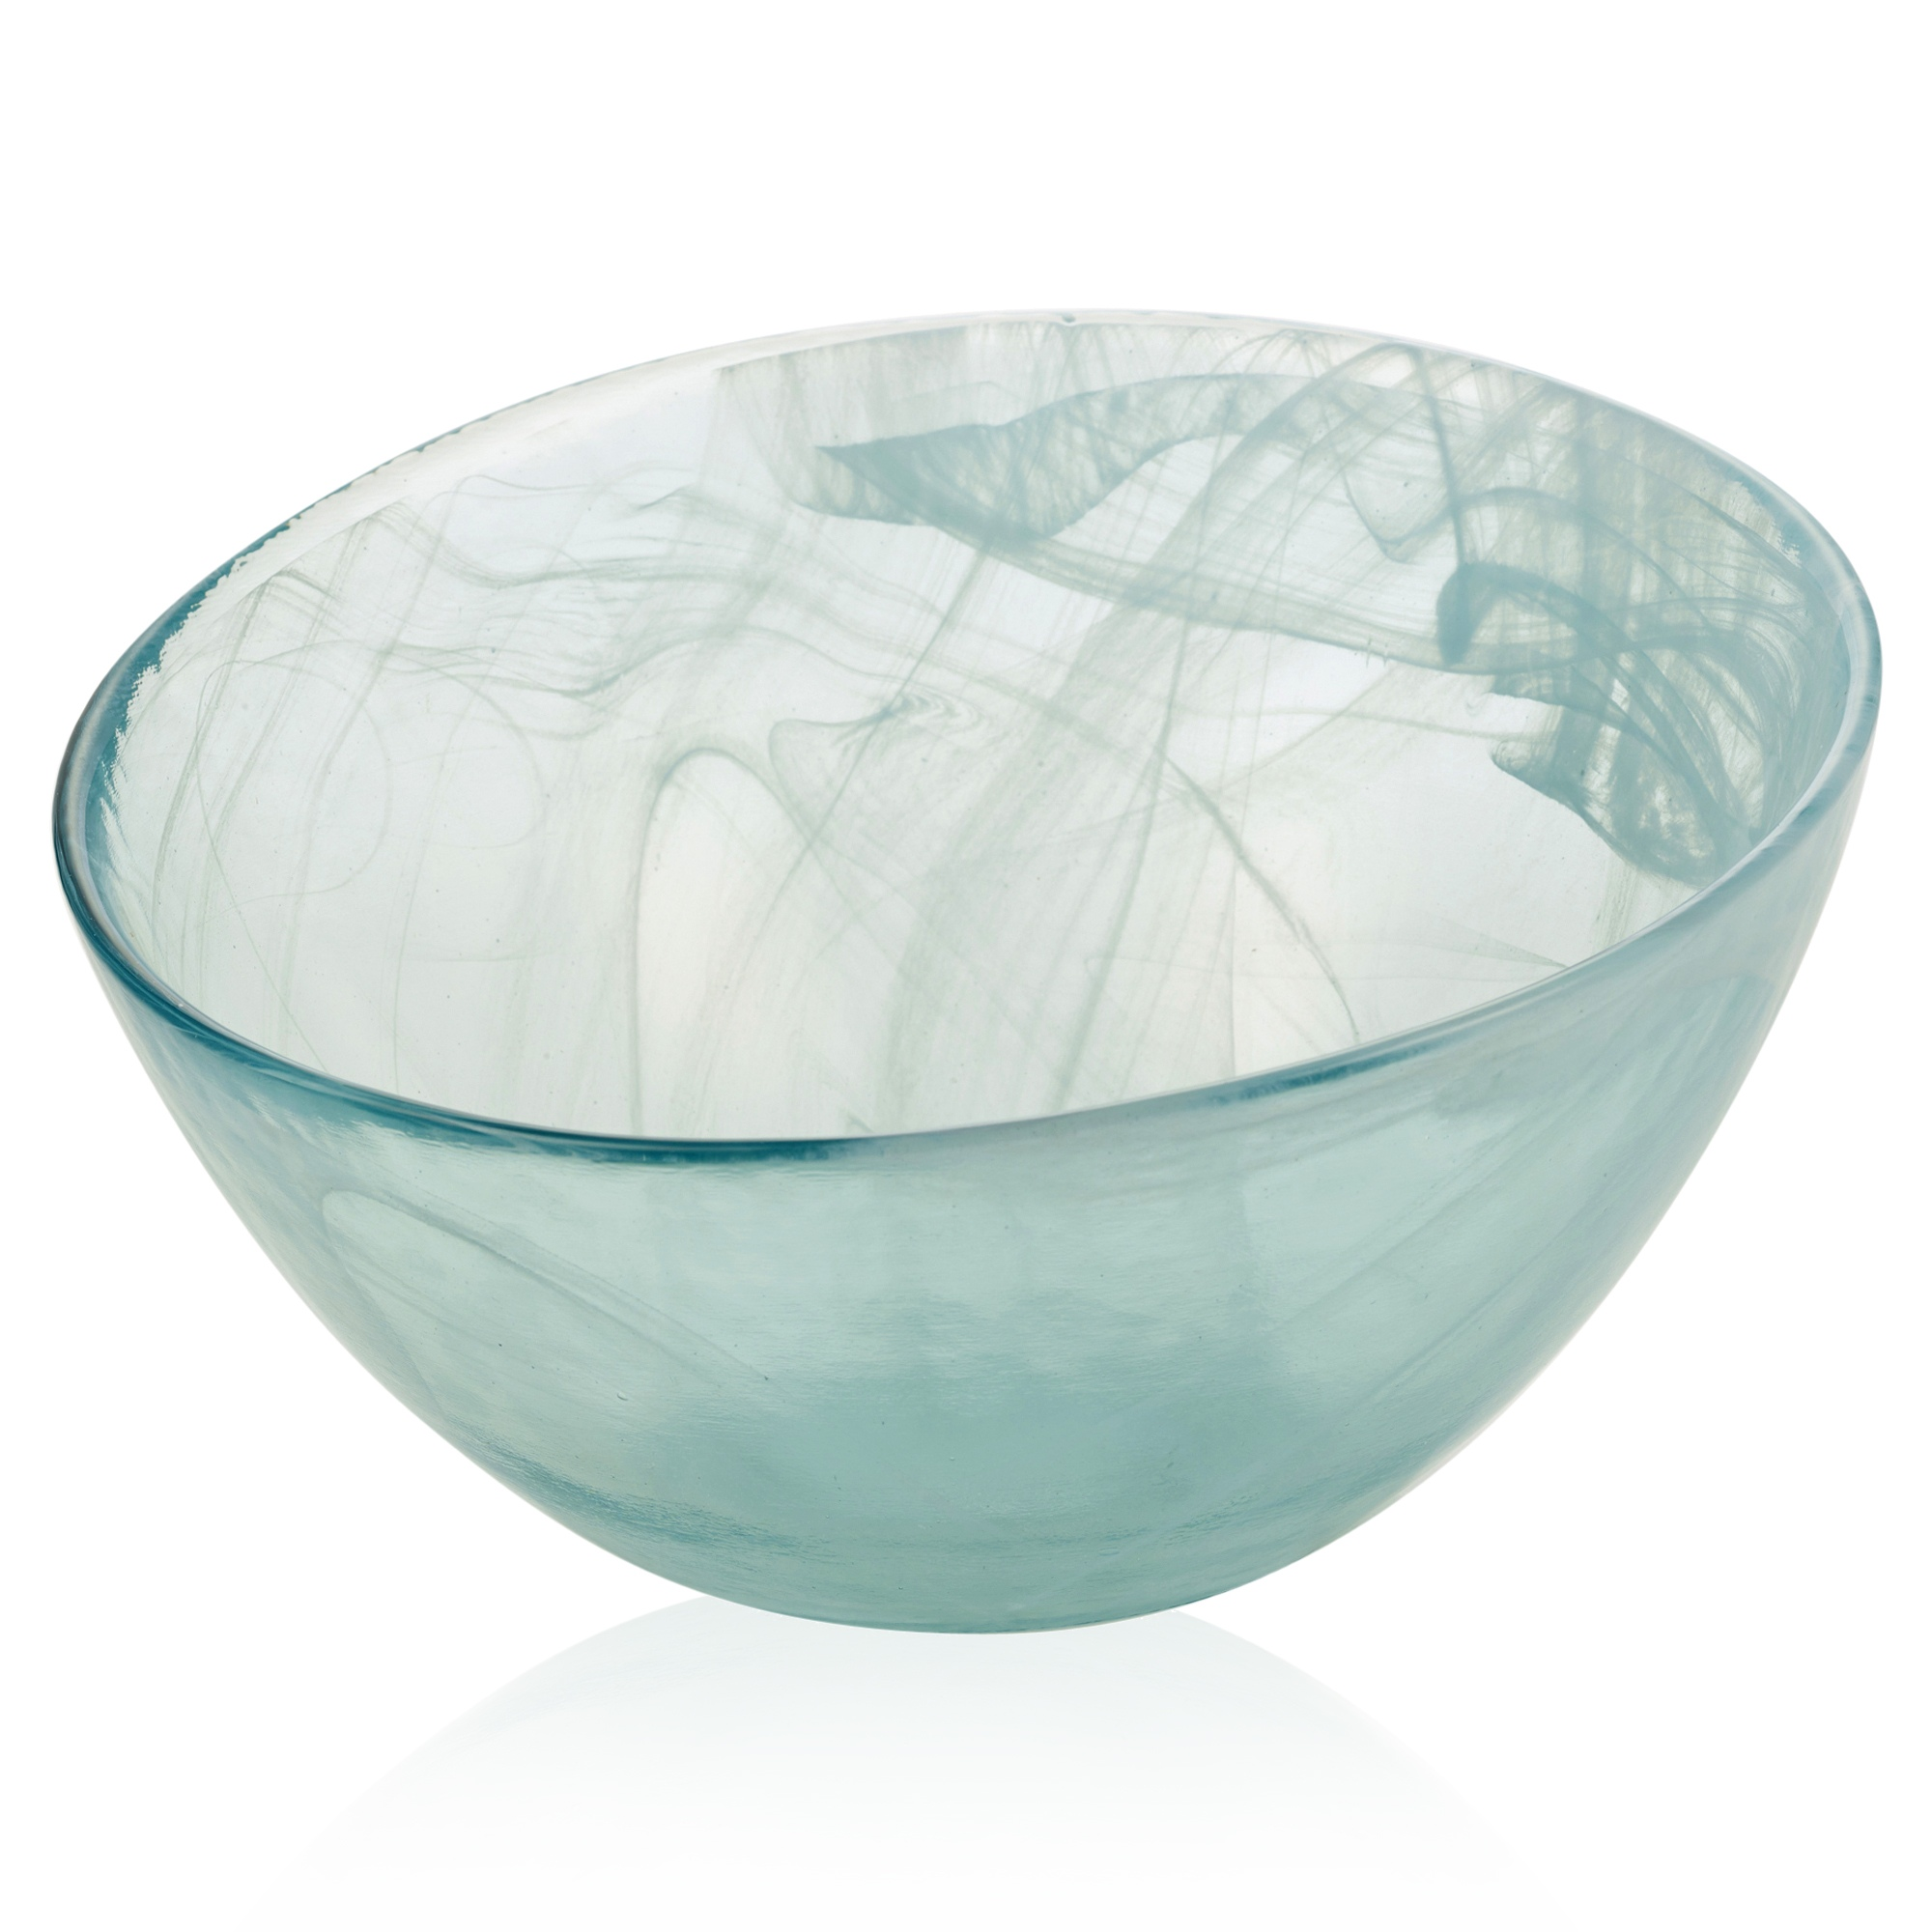 Large round blue tinted glass salad fruit bowl serving